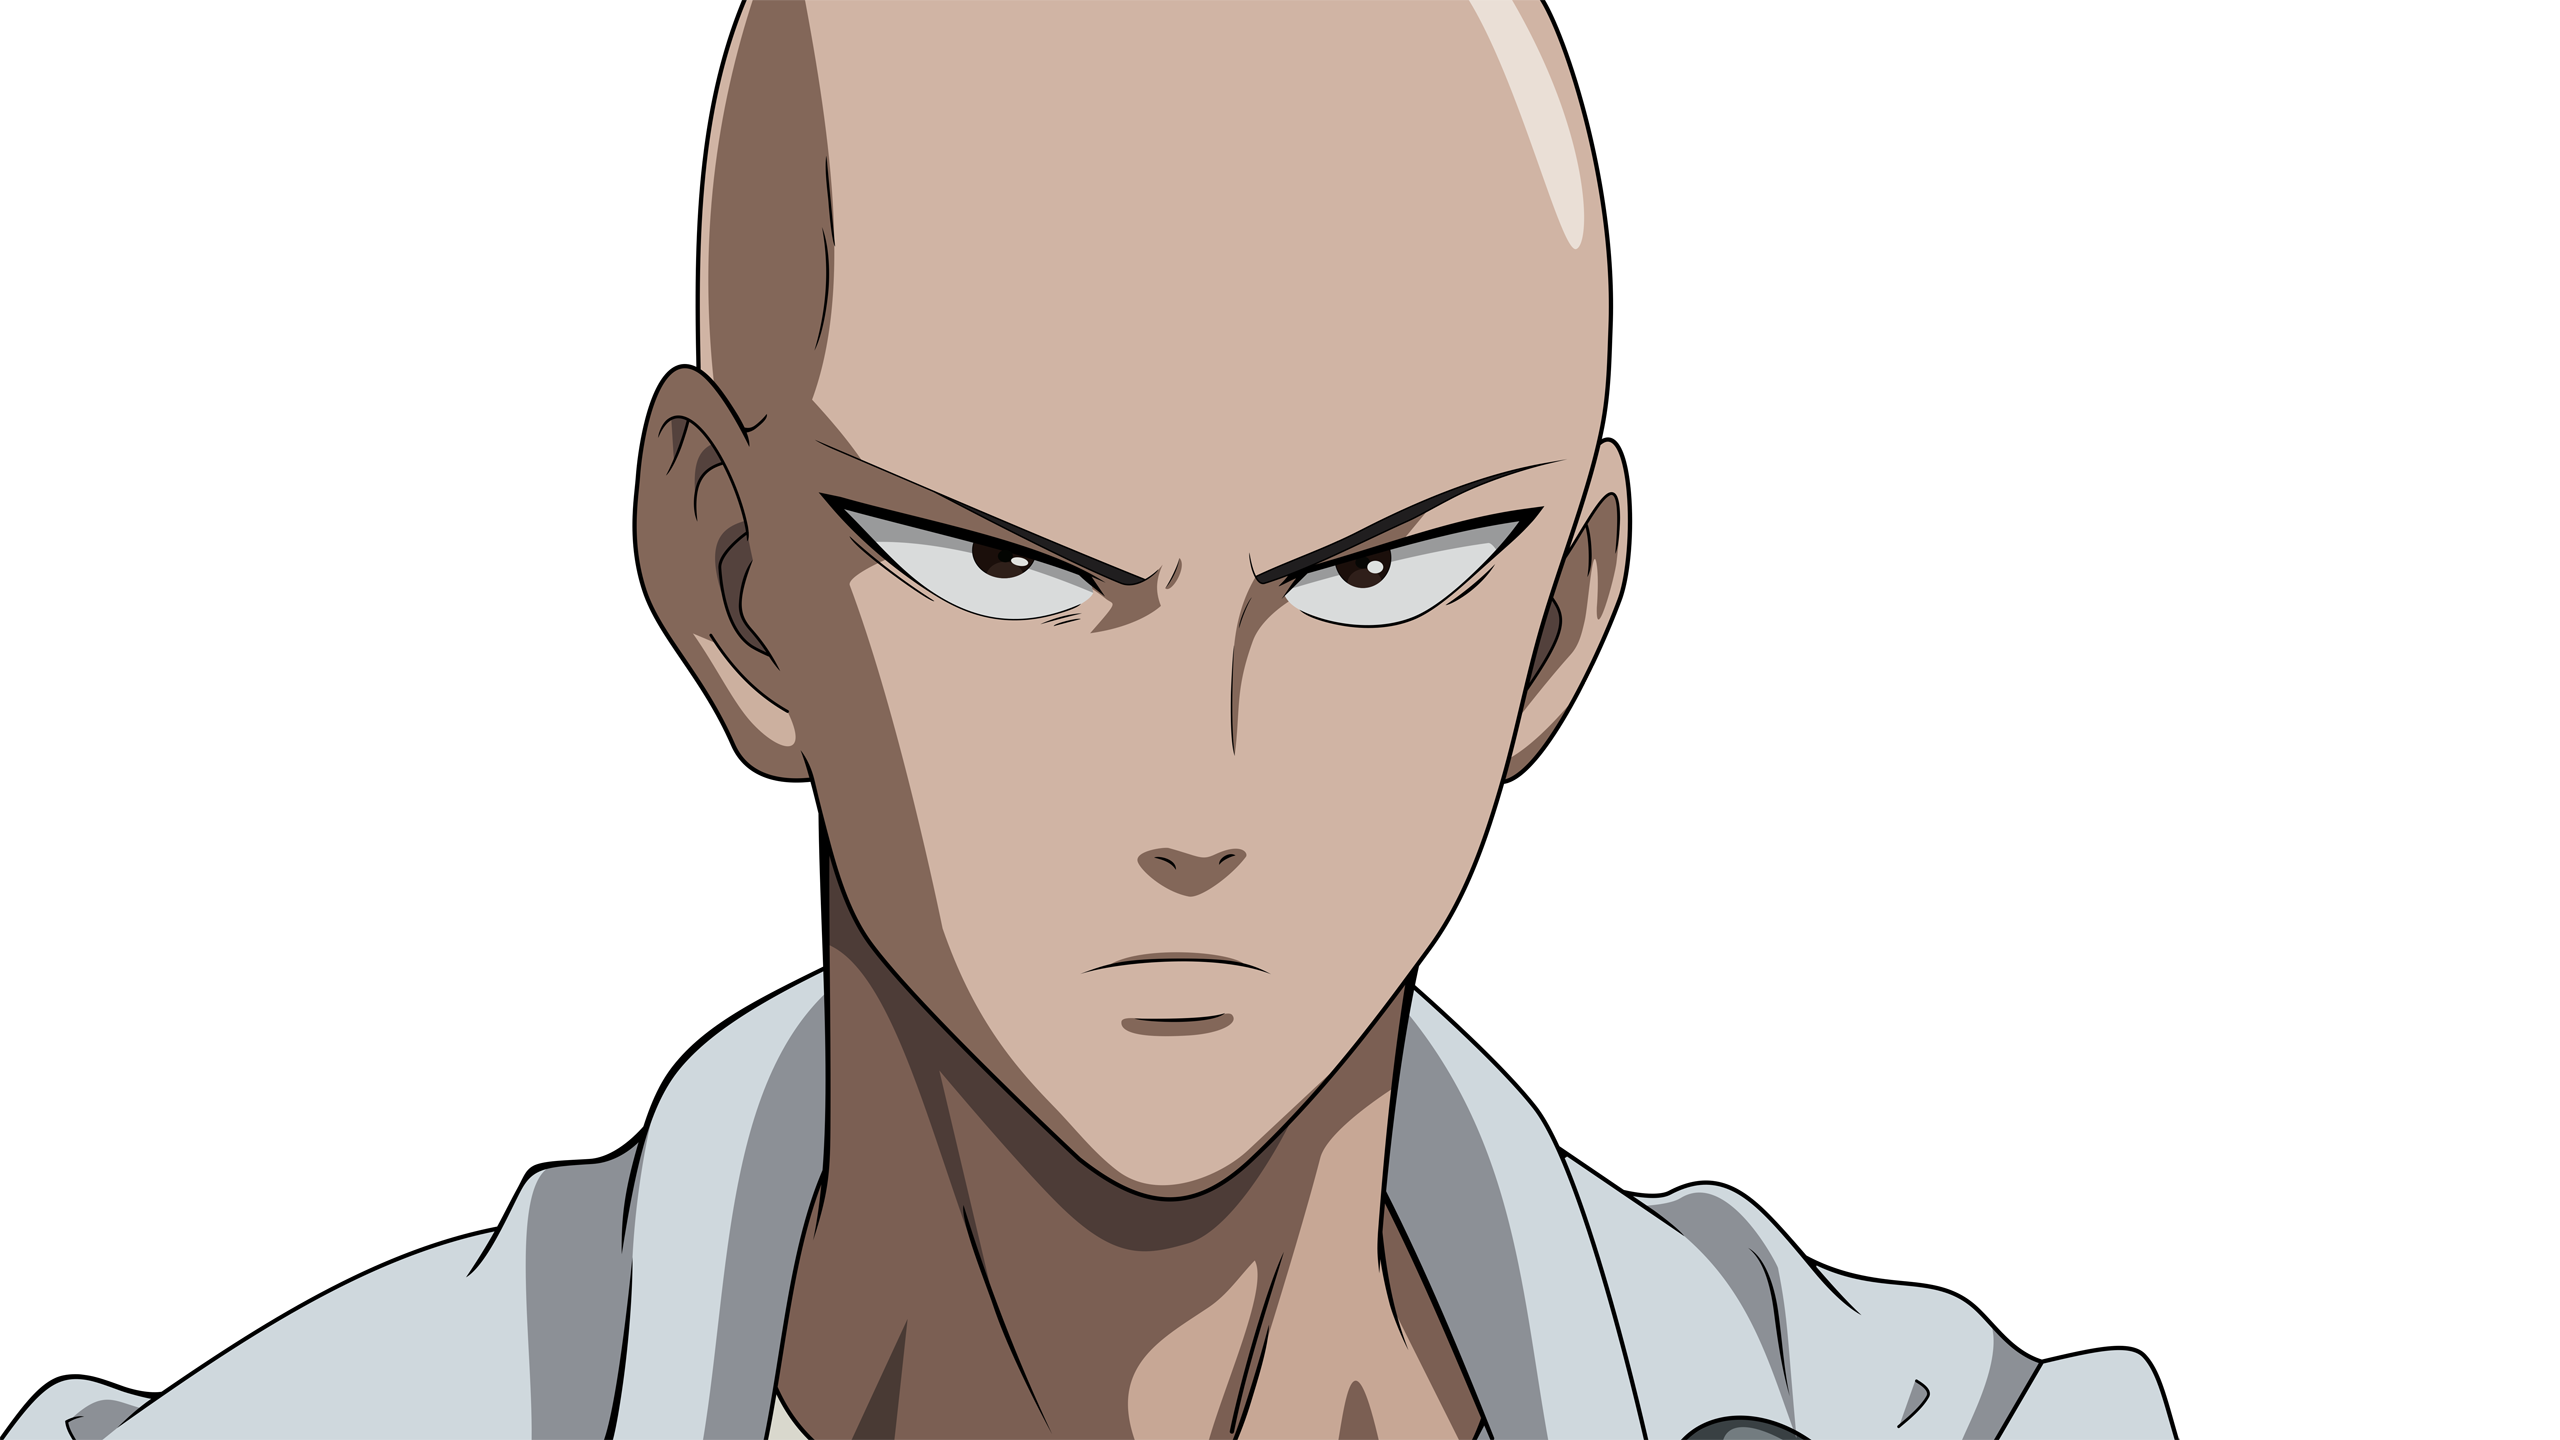 Saitama Cool Face One Punch Man HD Wallpaper Badass